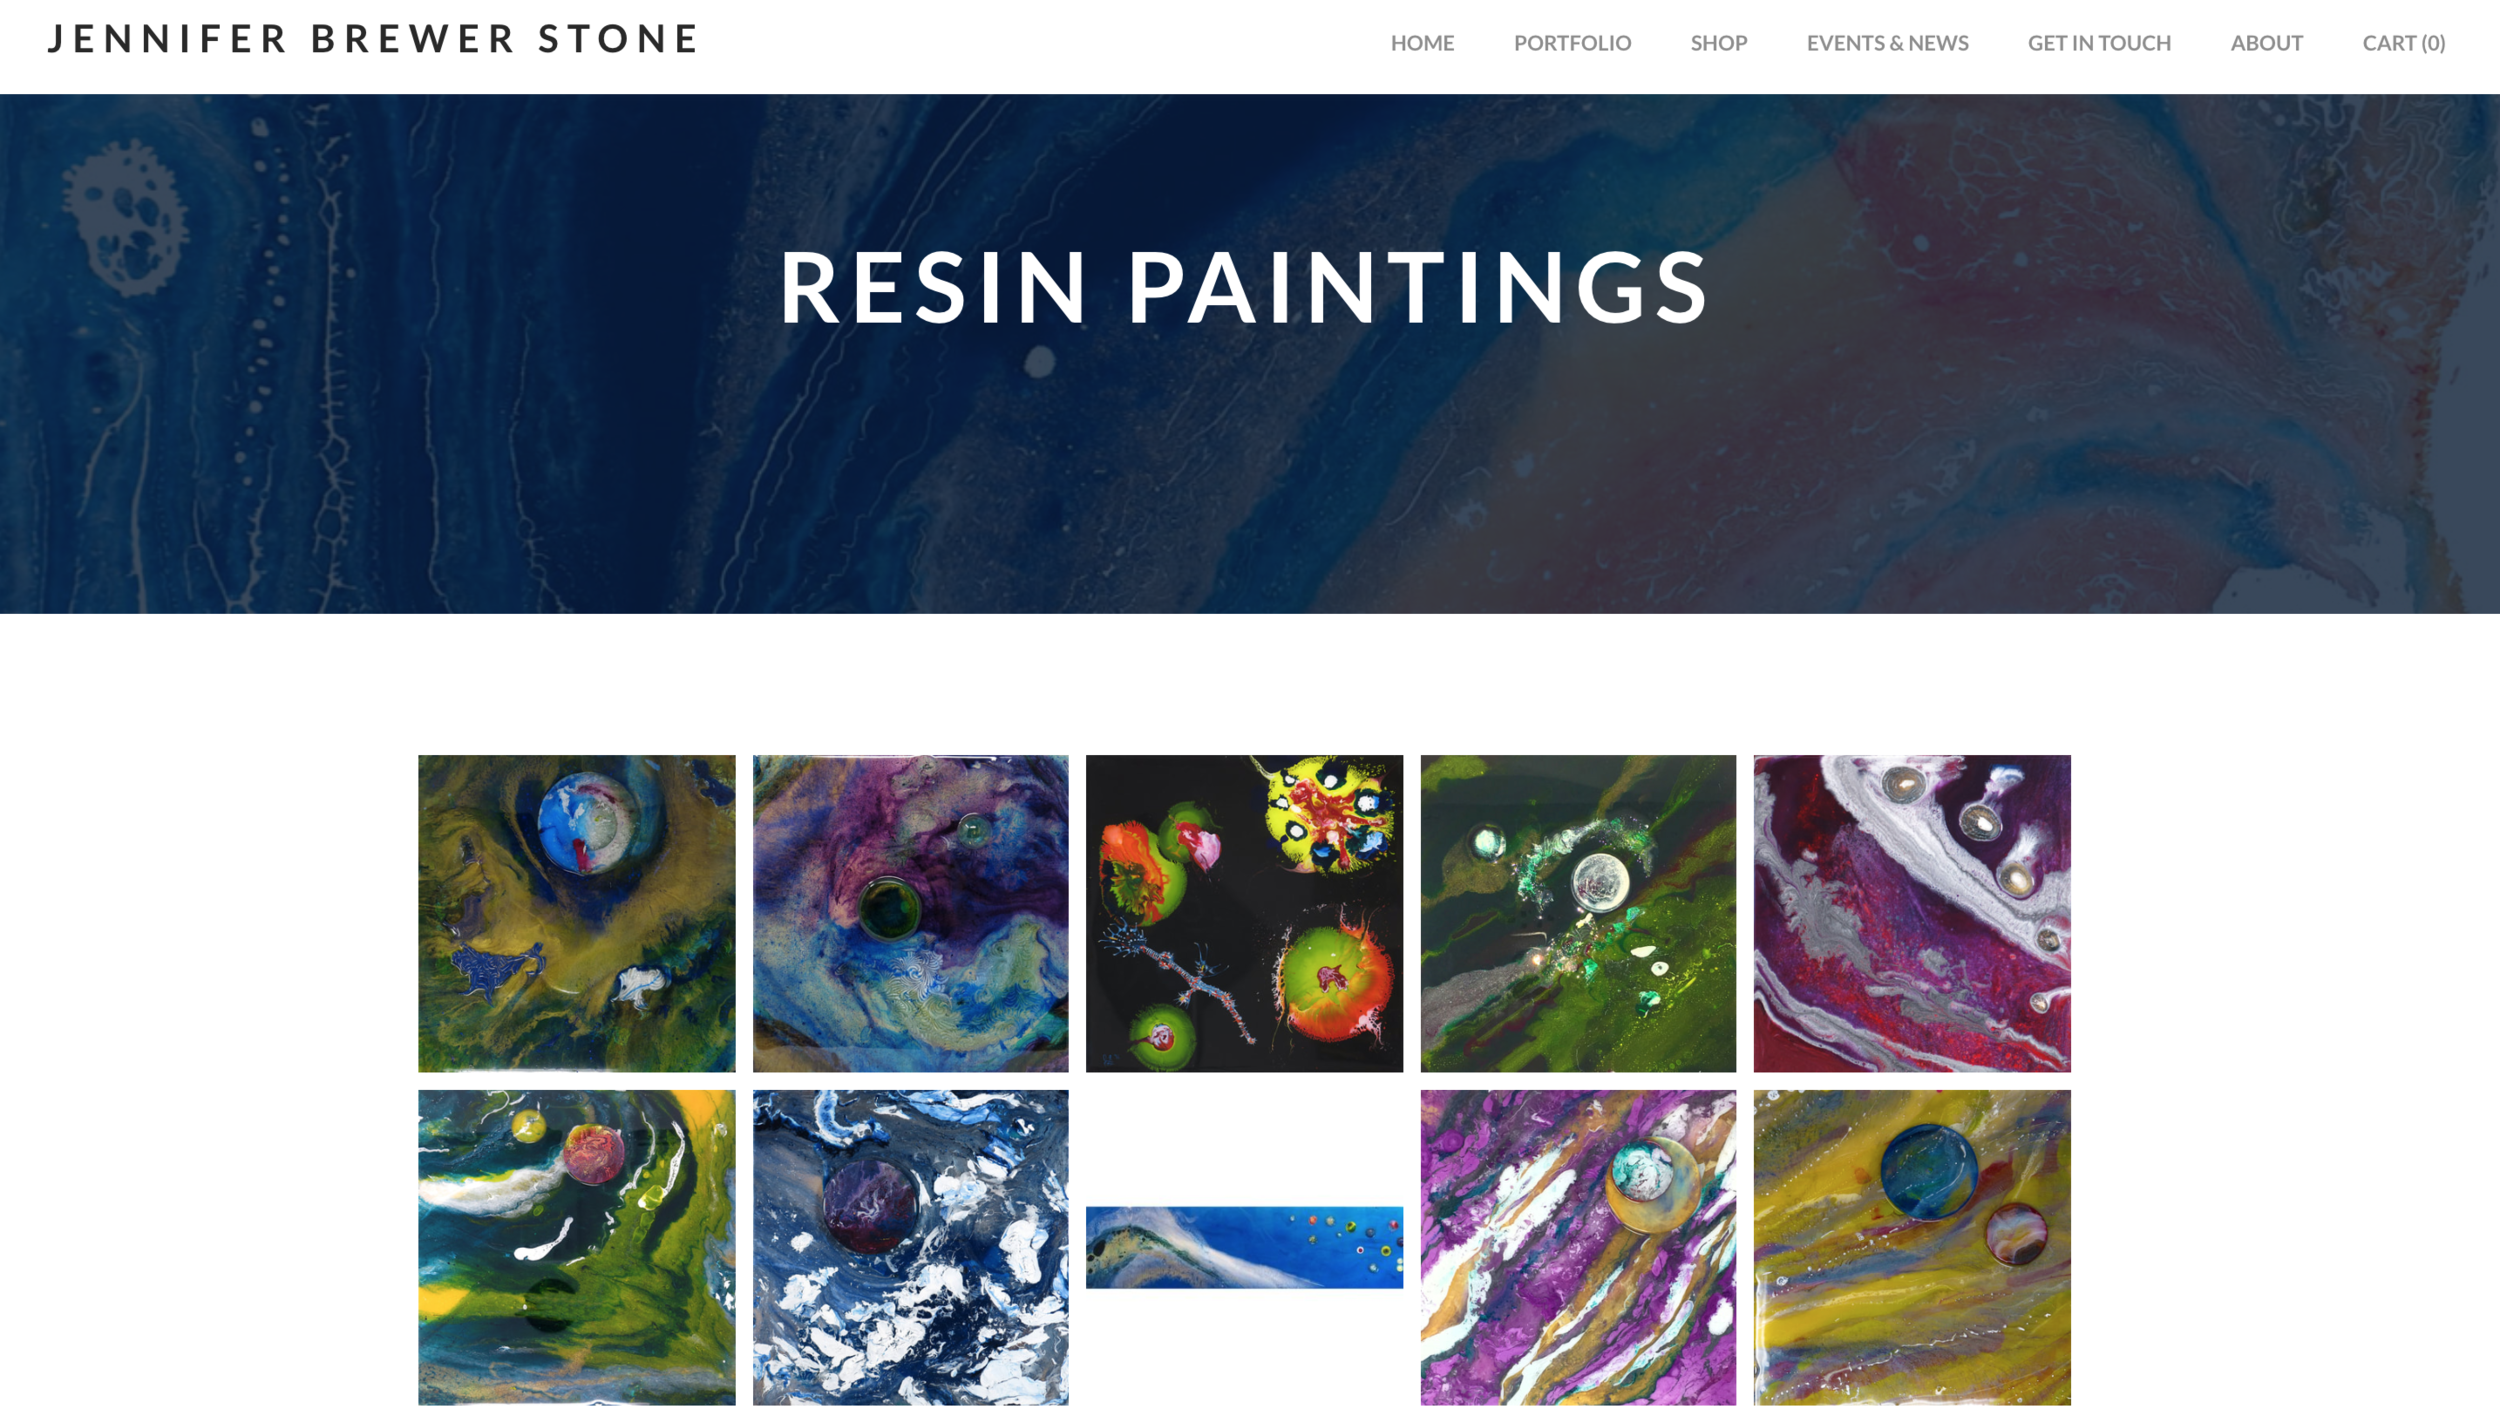 Jennifer Brewer Stone - Resin painter displaying portfolio and updating followers on upcoming shows. The site includes various galleries, shop window and the ability to reach out to Jennifer. Site created on weebly.